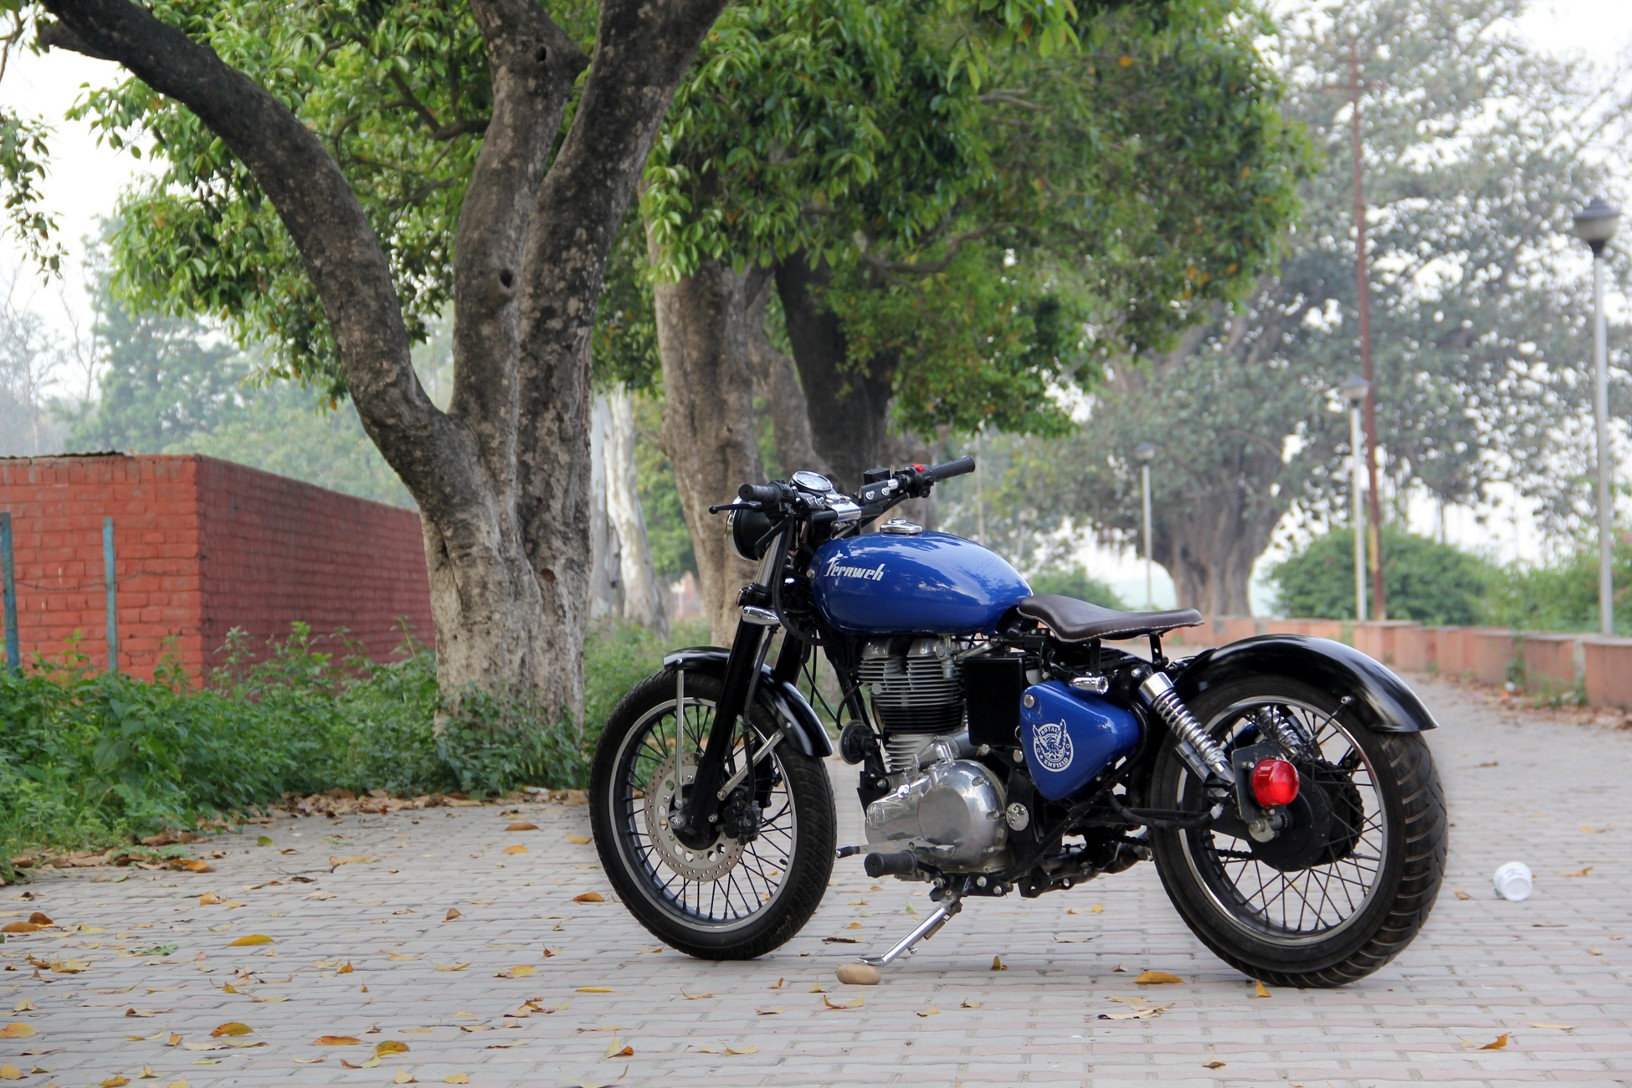 Fernweh-Modified-Royal-Enfield-Classic-UCE-Bobber-Bambukaat-Motorcycle-Customs.jpg